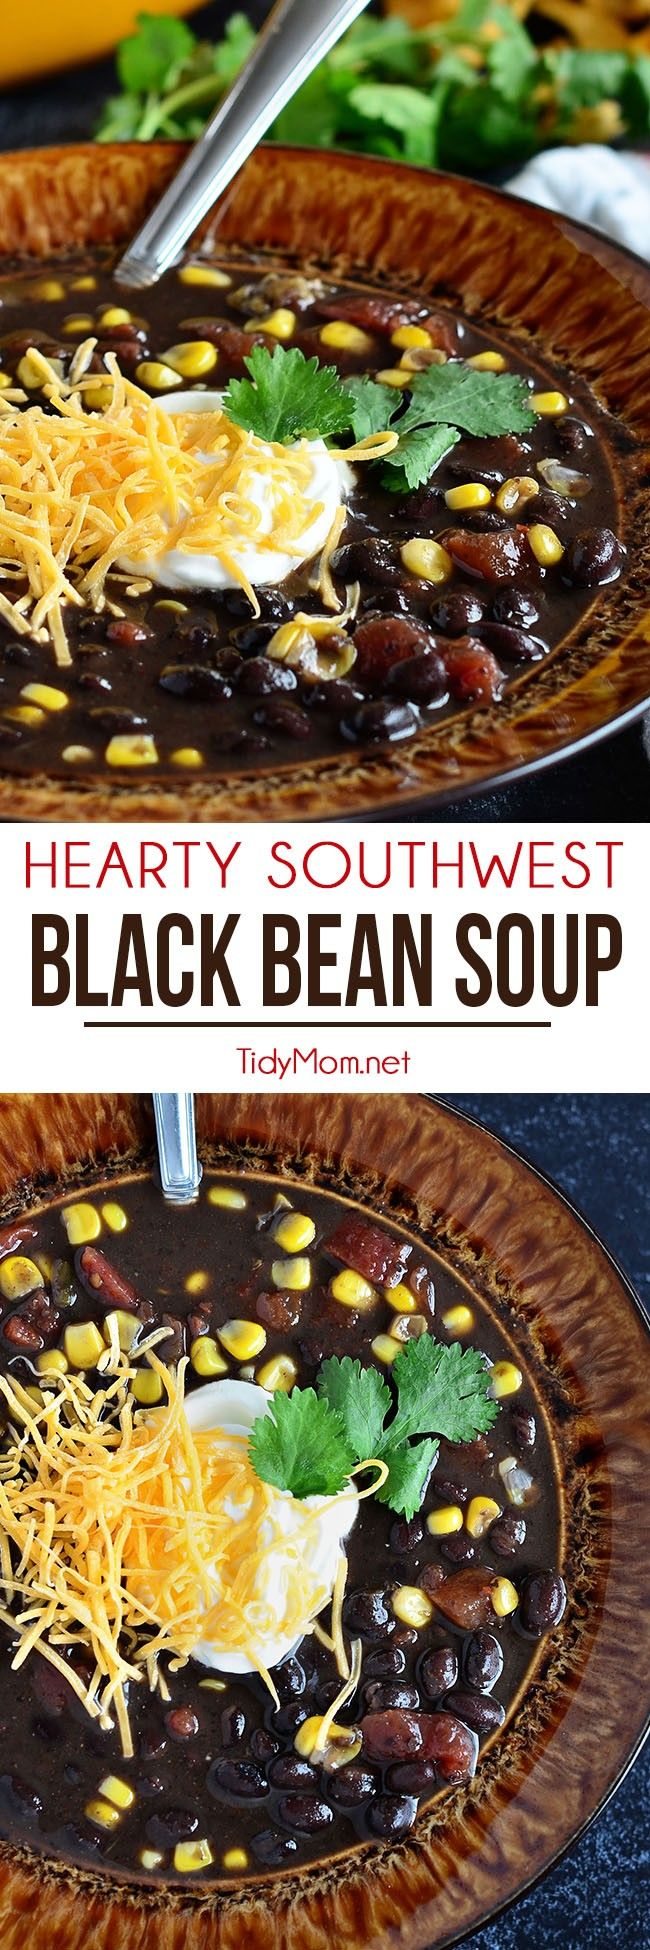 This Hearty Southwest Black Bean Soup is full of flavor, you'll never miss the meat! Ready for the table in 30 minutes, but it's even better the next day!! Get the easy recipe at TidyMom.net